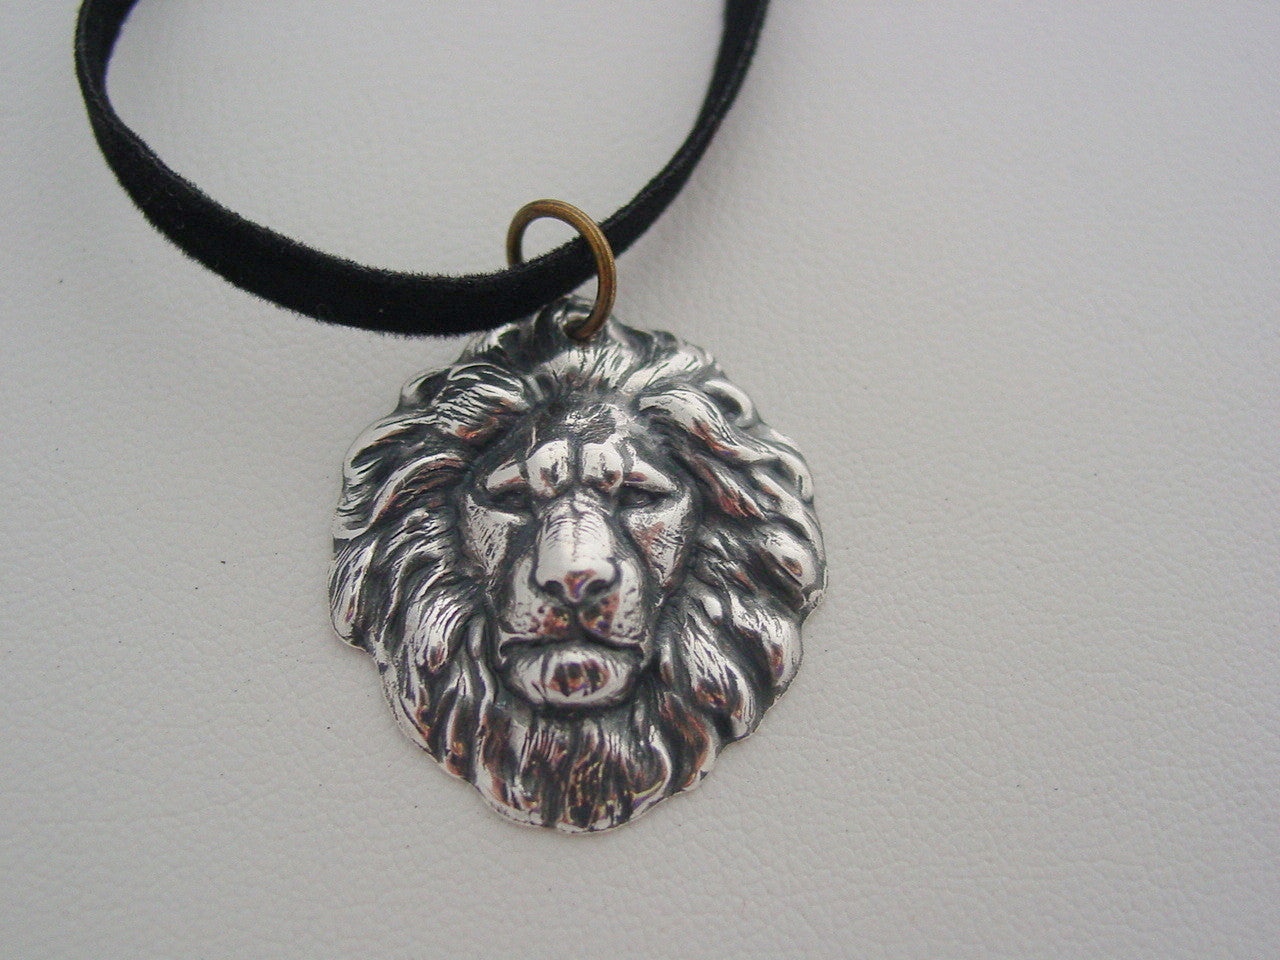 Witches of East End Freya's Silver Oxidized Finish Lion Talisman Necklace Witches of East End